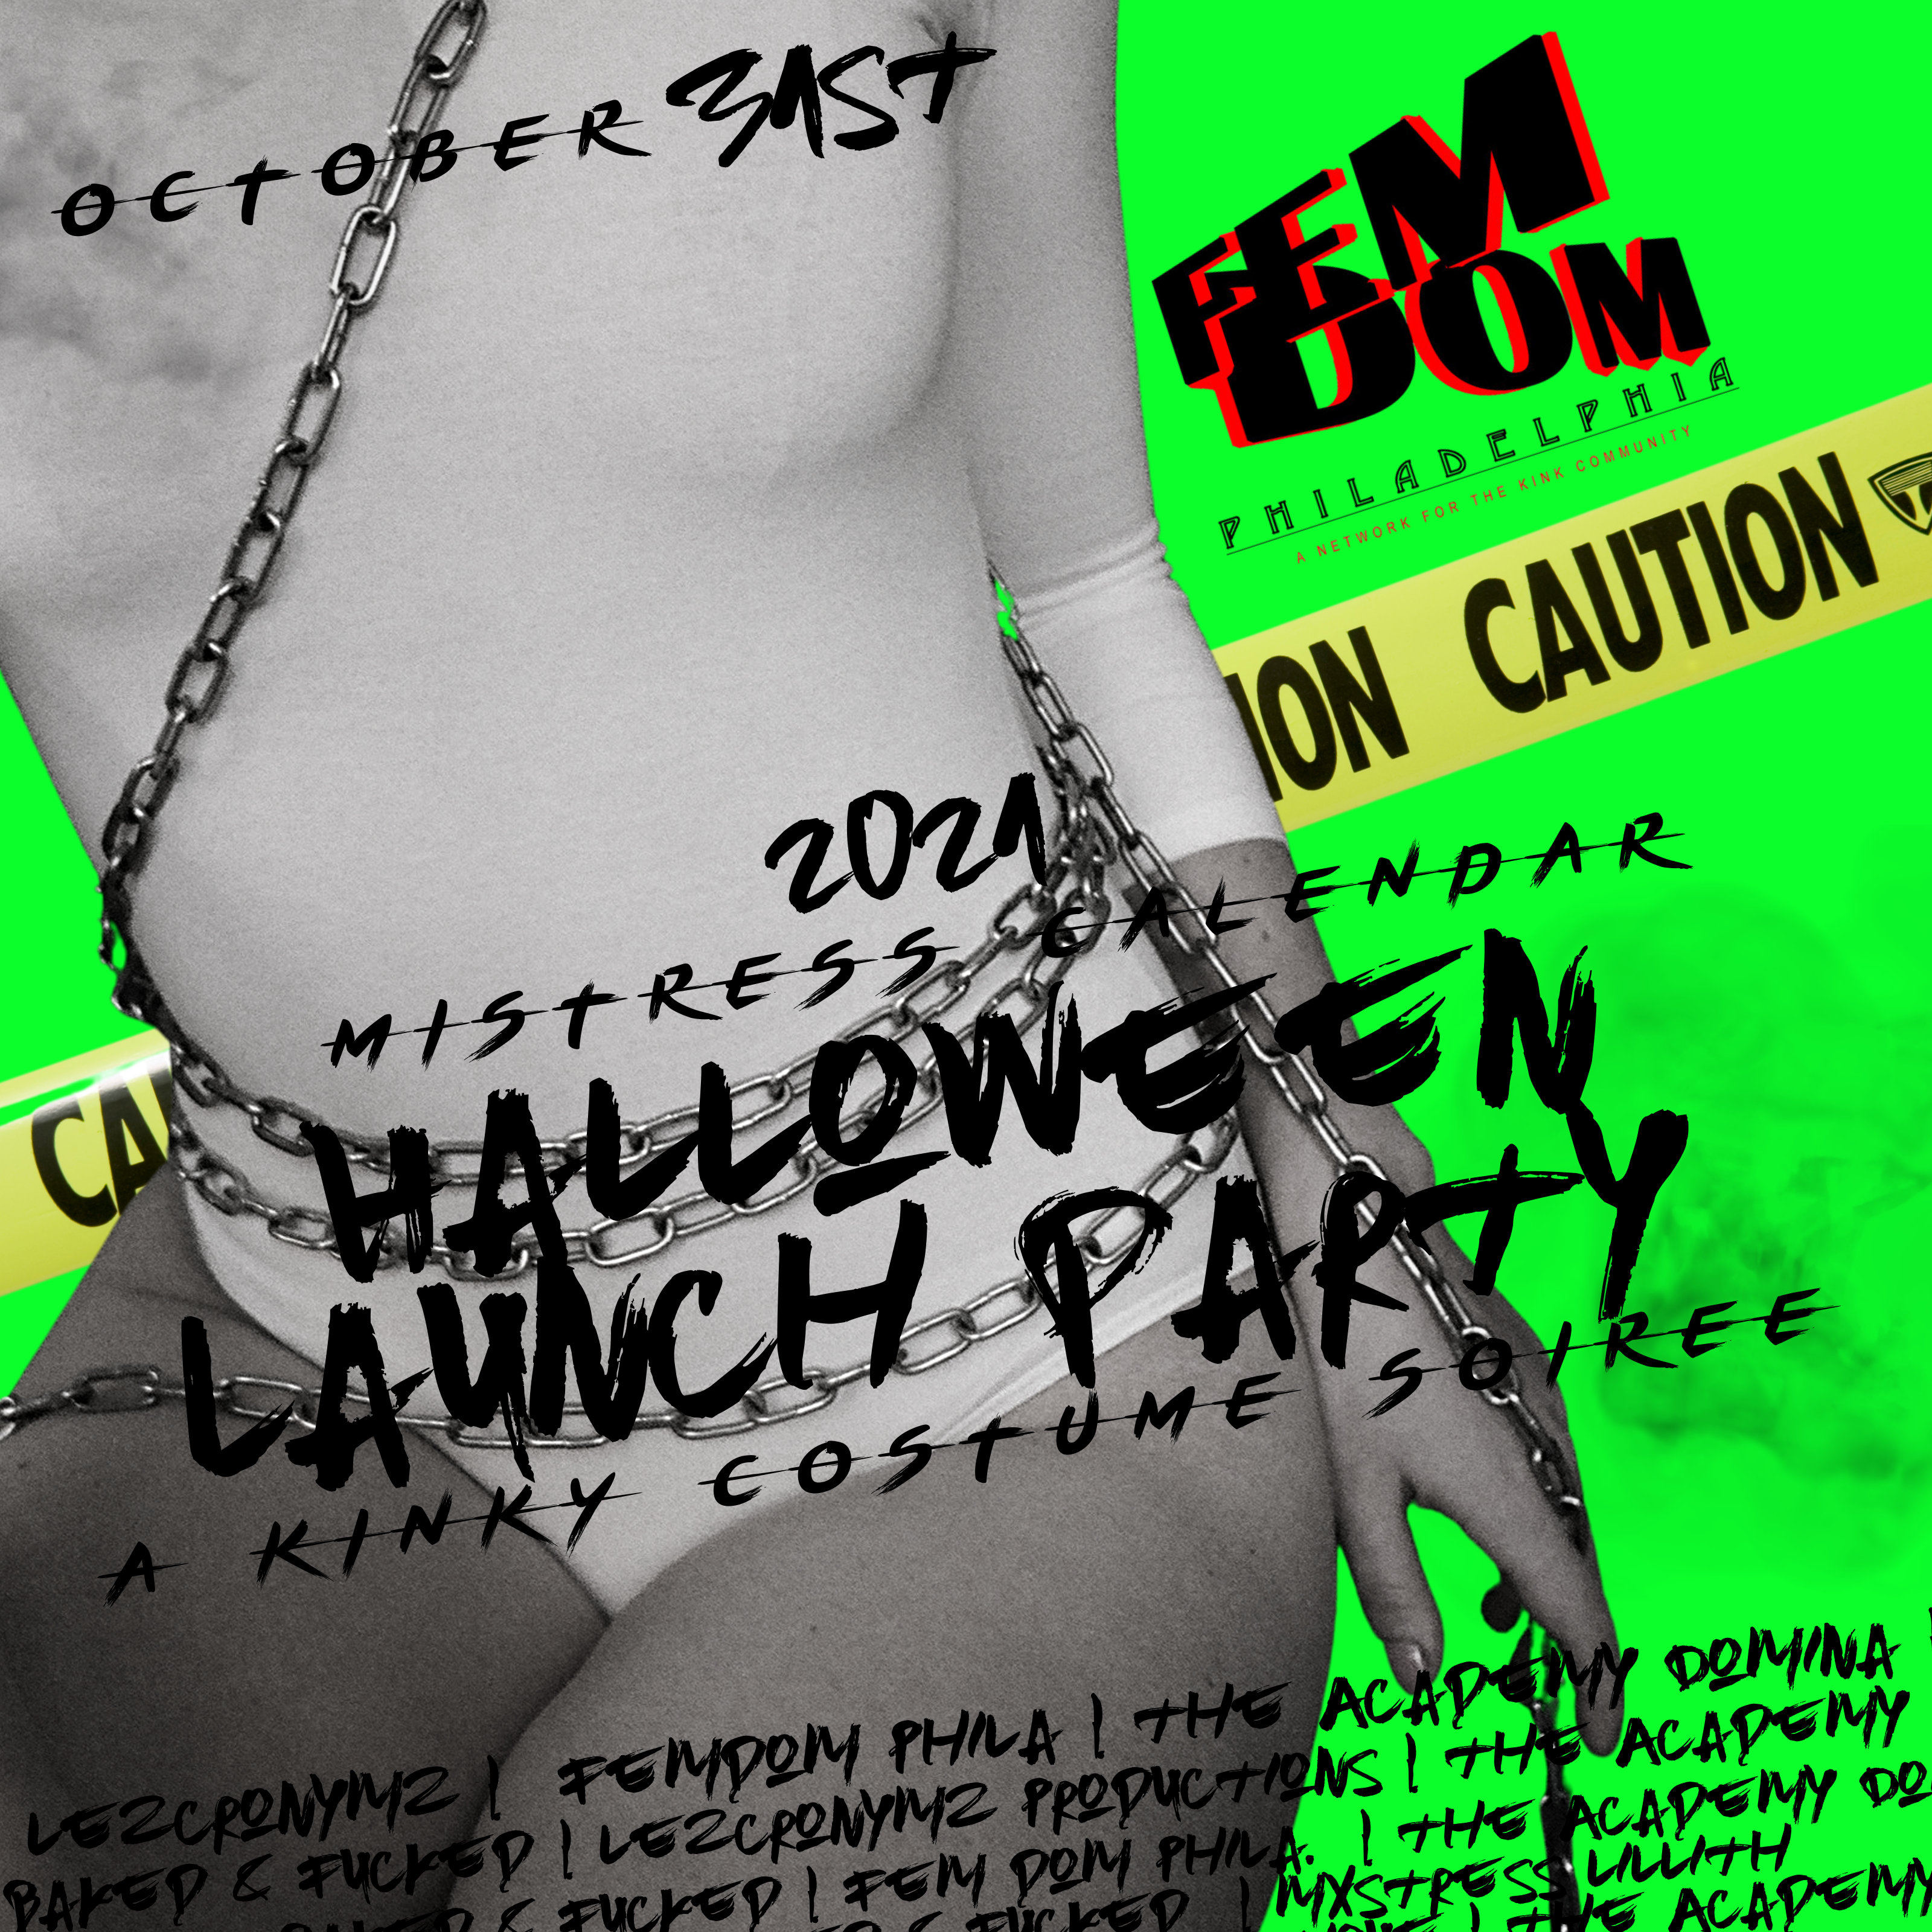 The 2021 Mistress Calendar Launch Party this Halloween!